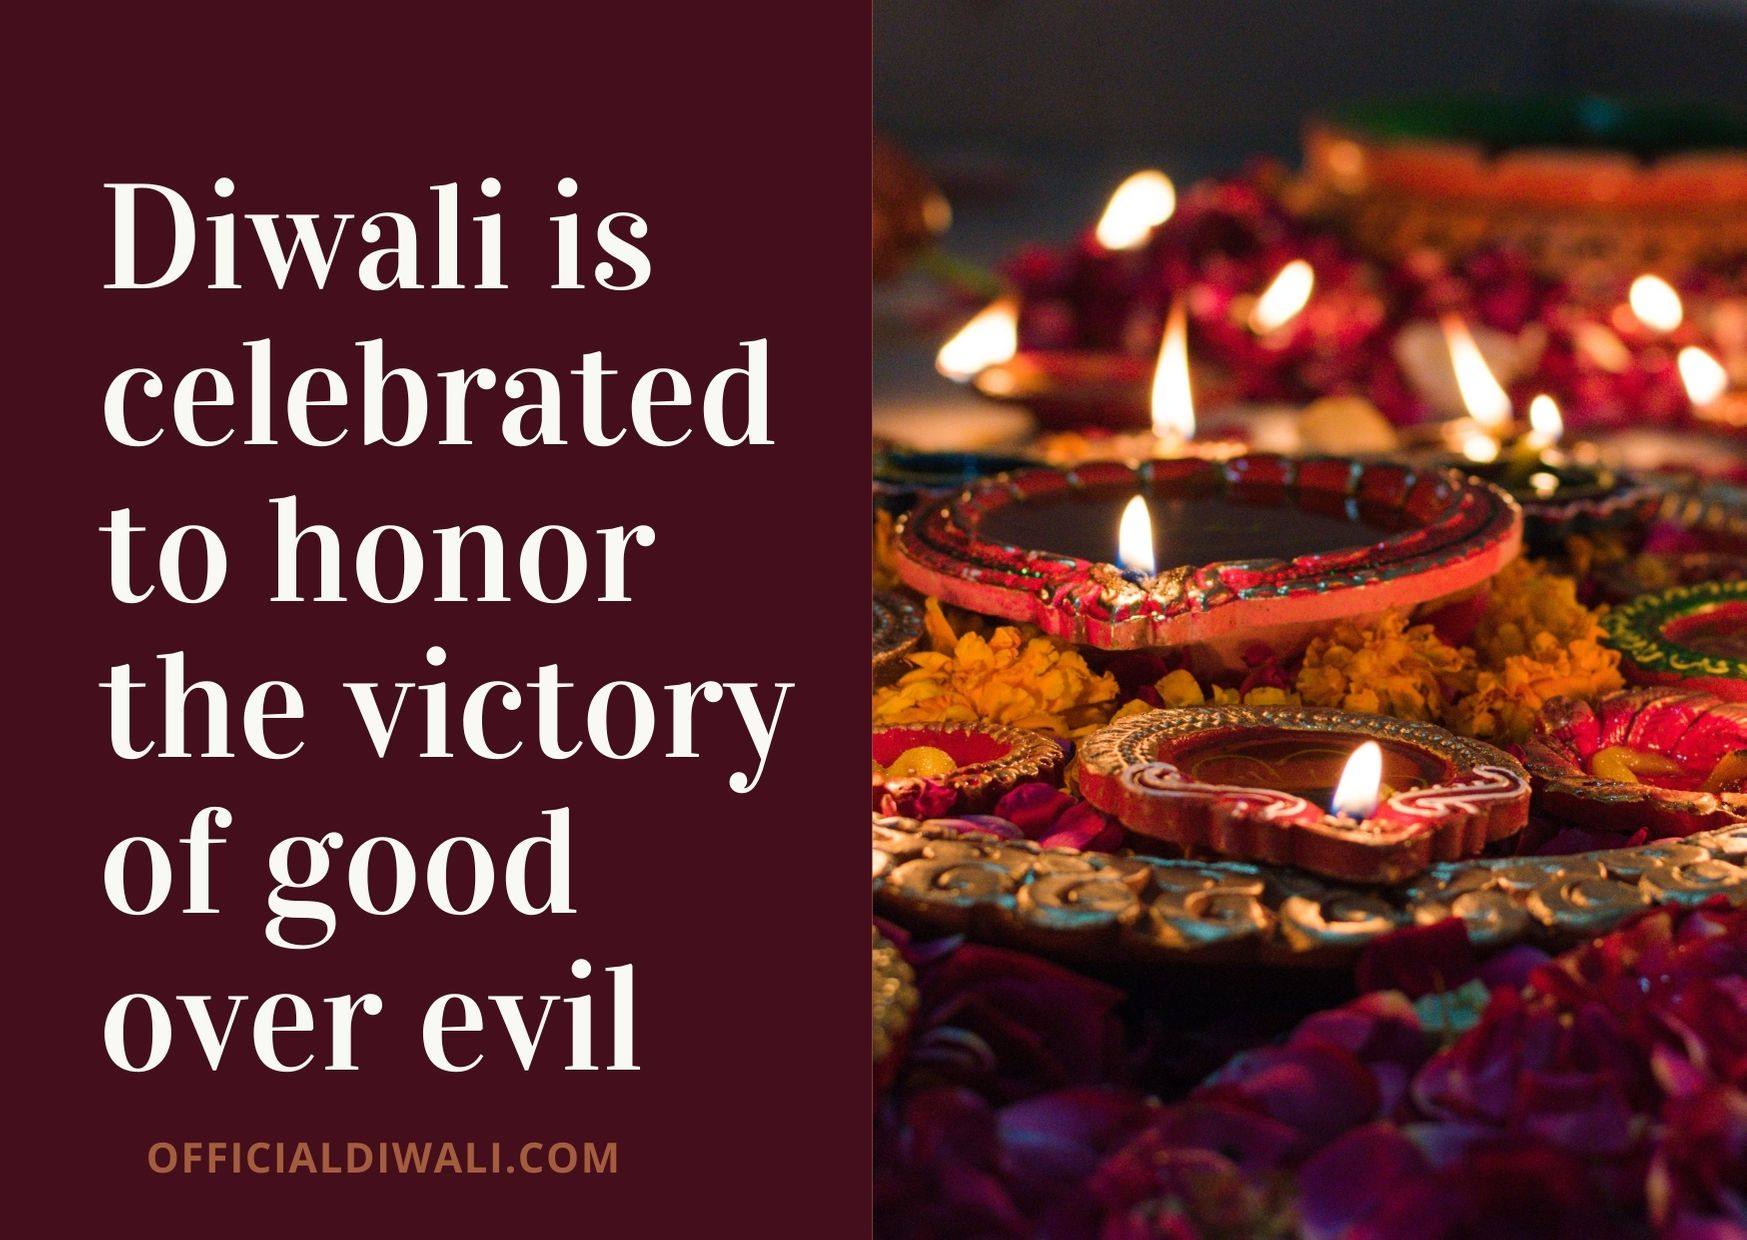 Diwali is celebrated to honor the victory of good over evil - Officialdiwali.com